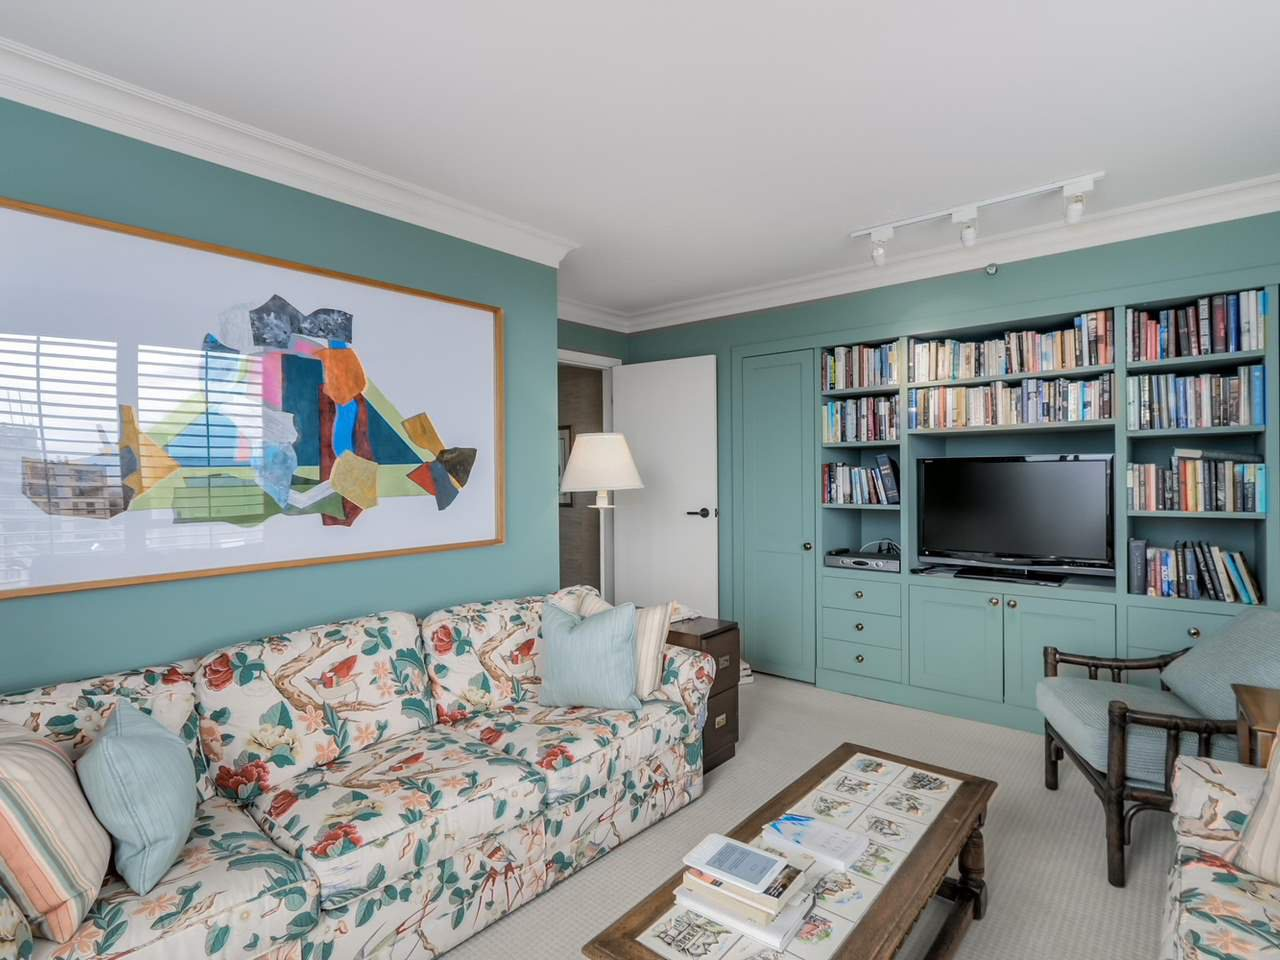 """Photo 11: Photos: PH1 2108 W 38TH Avenue in Vancouver: Kerrisdale Condo for sale in """"THE WILSHIRE"""" (Vancouver West)  : MLS®# R2072443"""